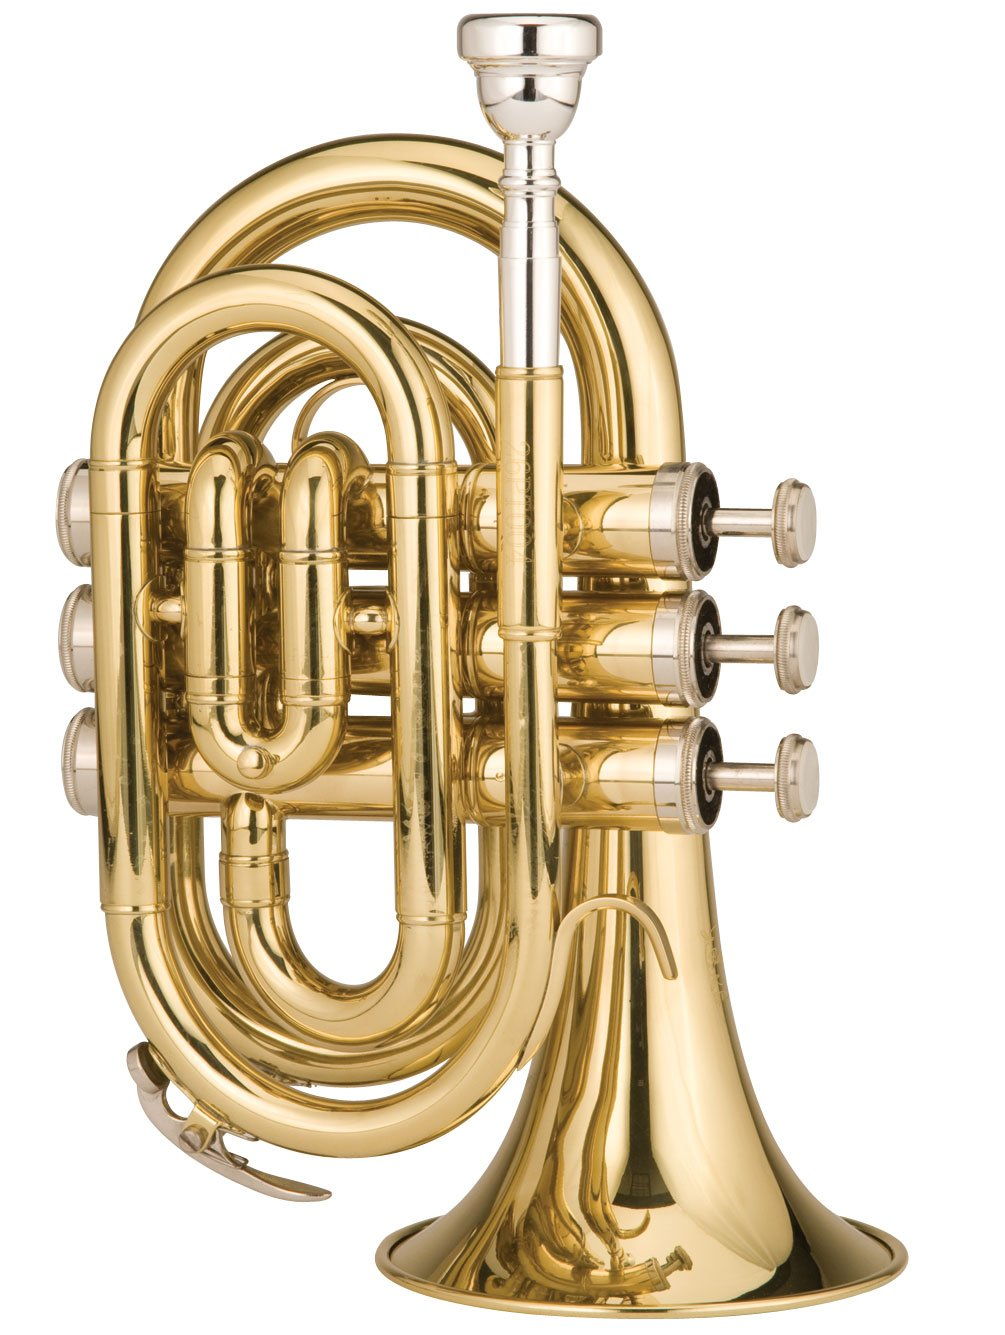 Ravel RPKT1 Pocket Trumpet Brass